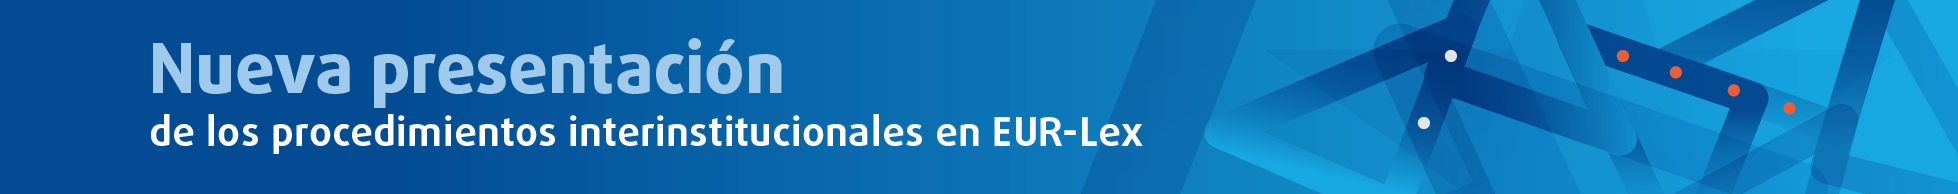 Image banner that links to news about the new display of interinstitutional procedures on EUR-Lex